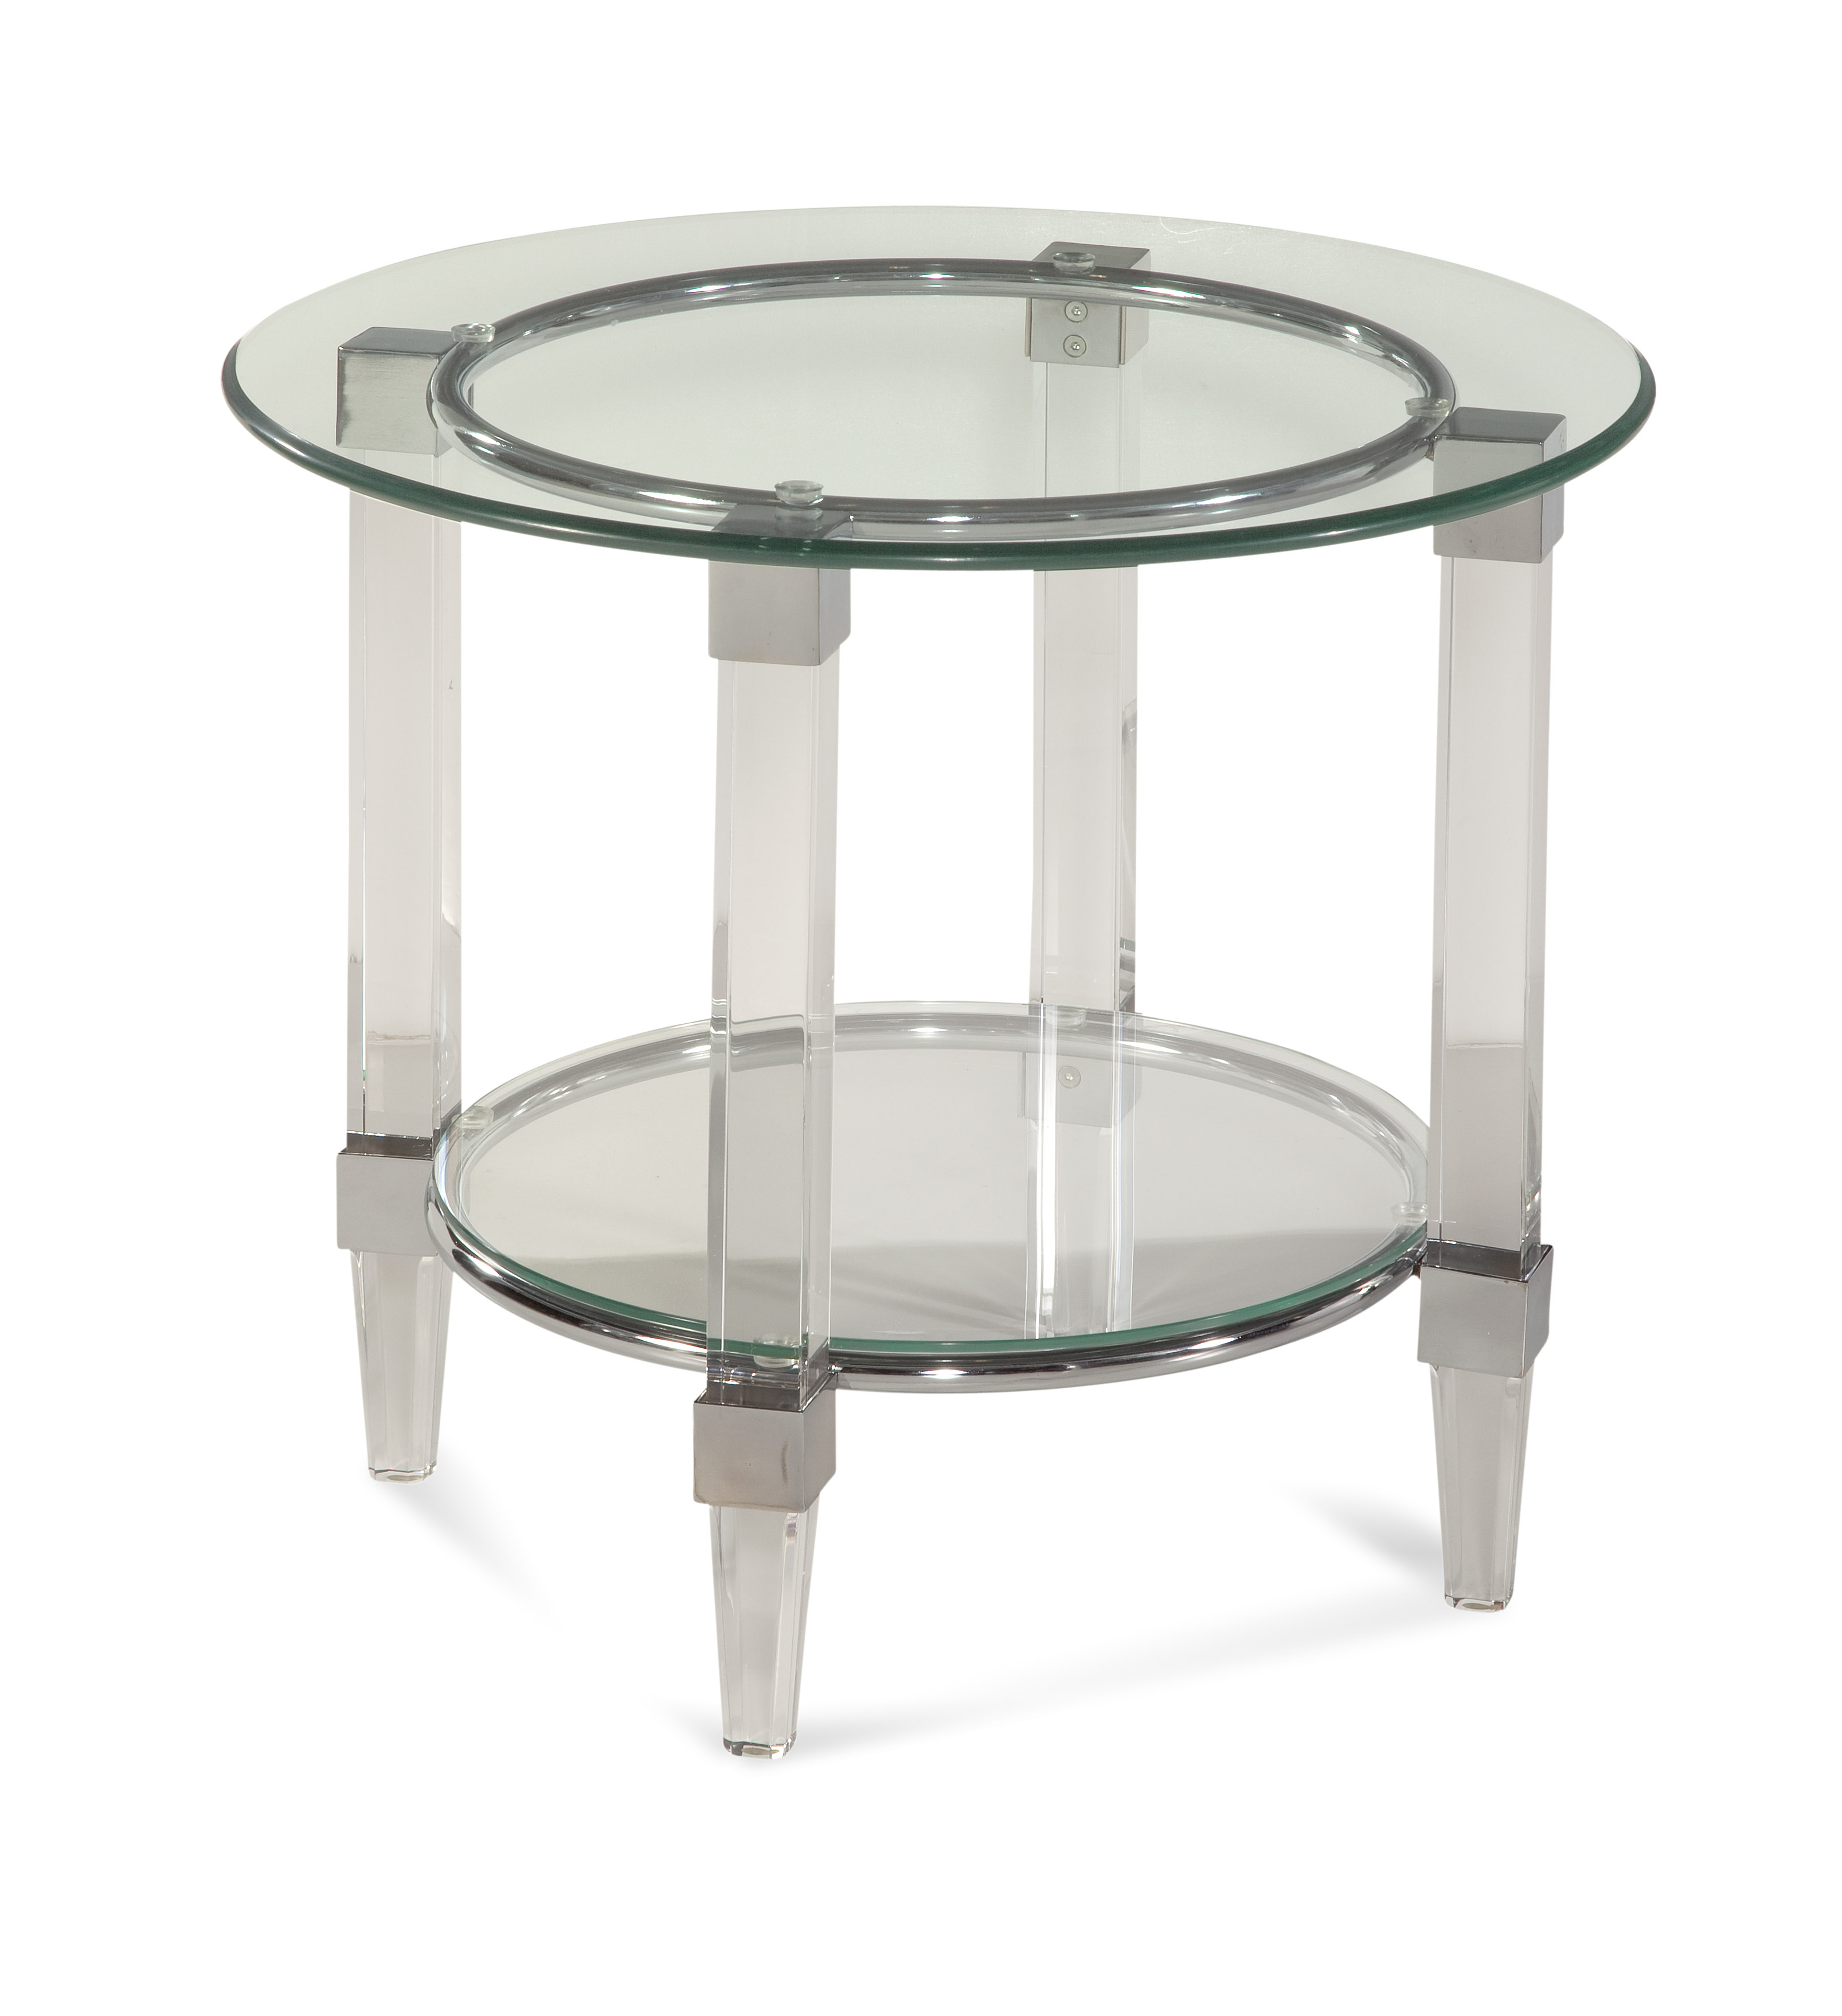 Bassett Mirror Thoroughly Modern Cristal Round End Table - Item Number: 2929-220